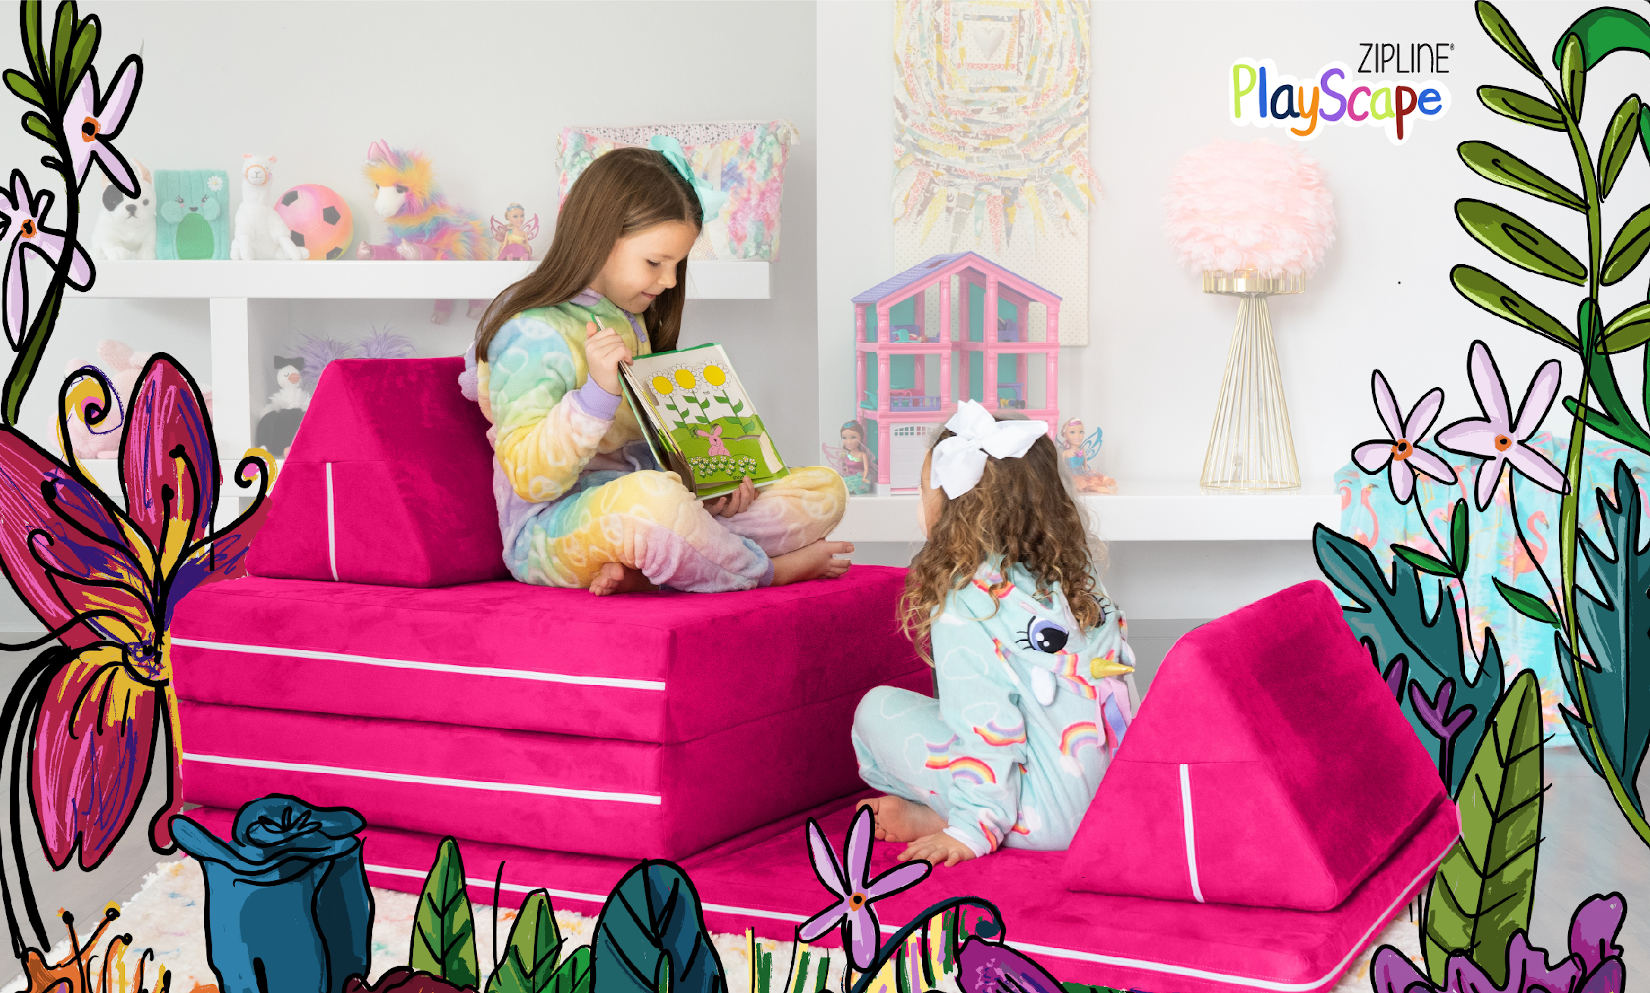 Girls reading on the Zipline Playscape Kids Couch